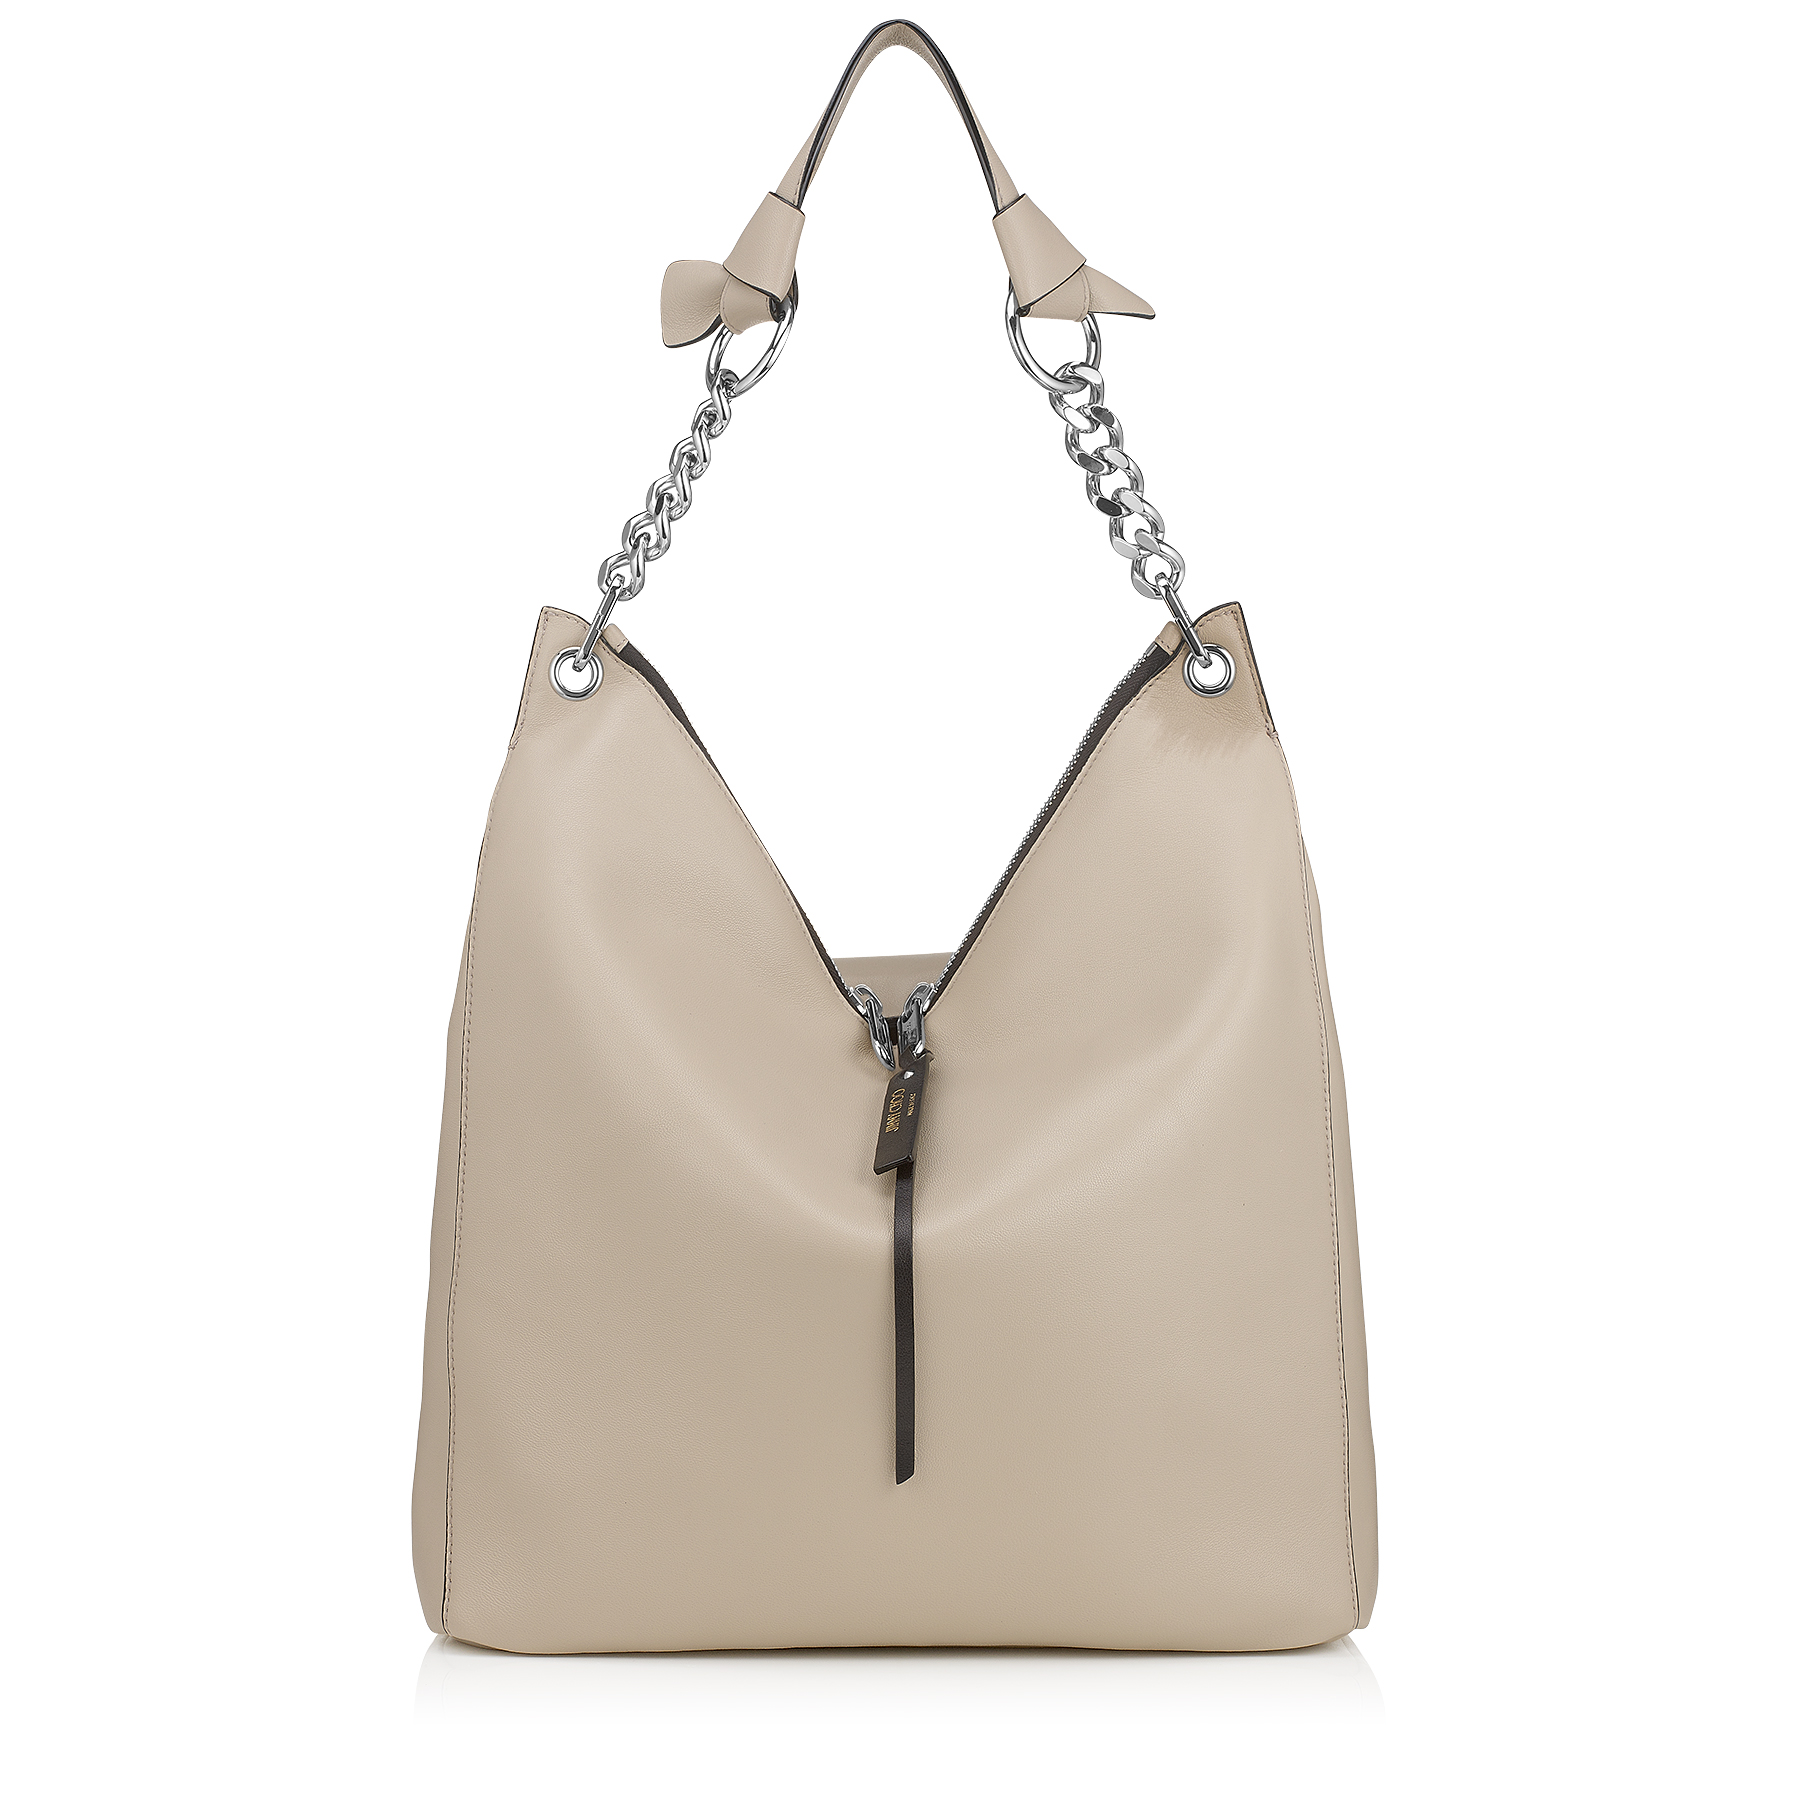 RAVEN Marble Nappa Leather Shoulder Bag